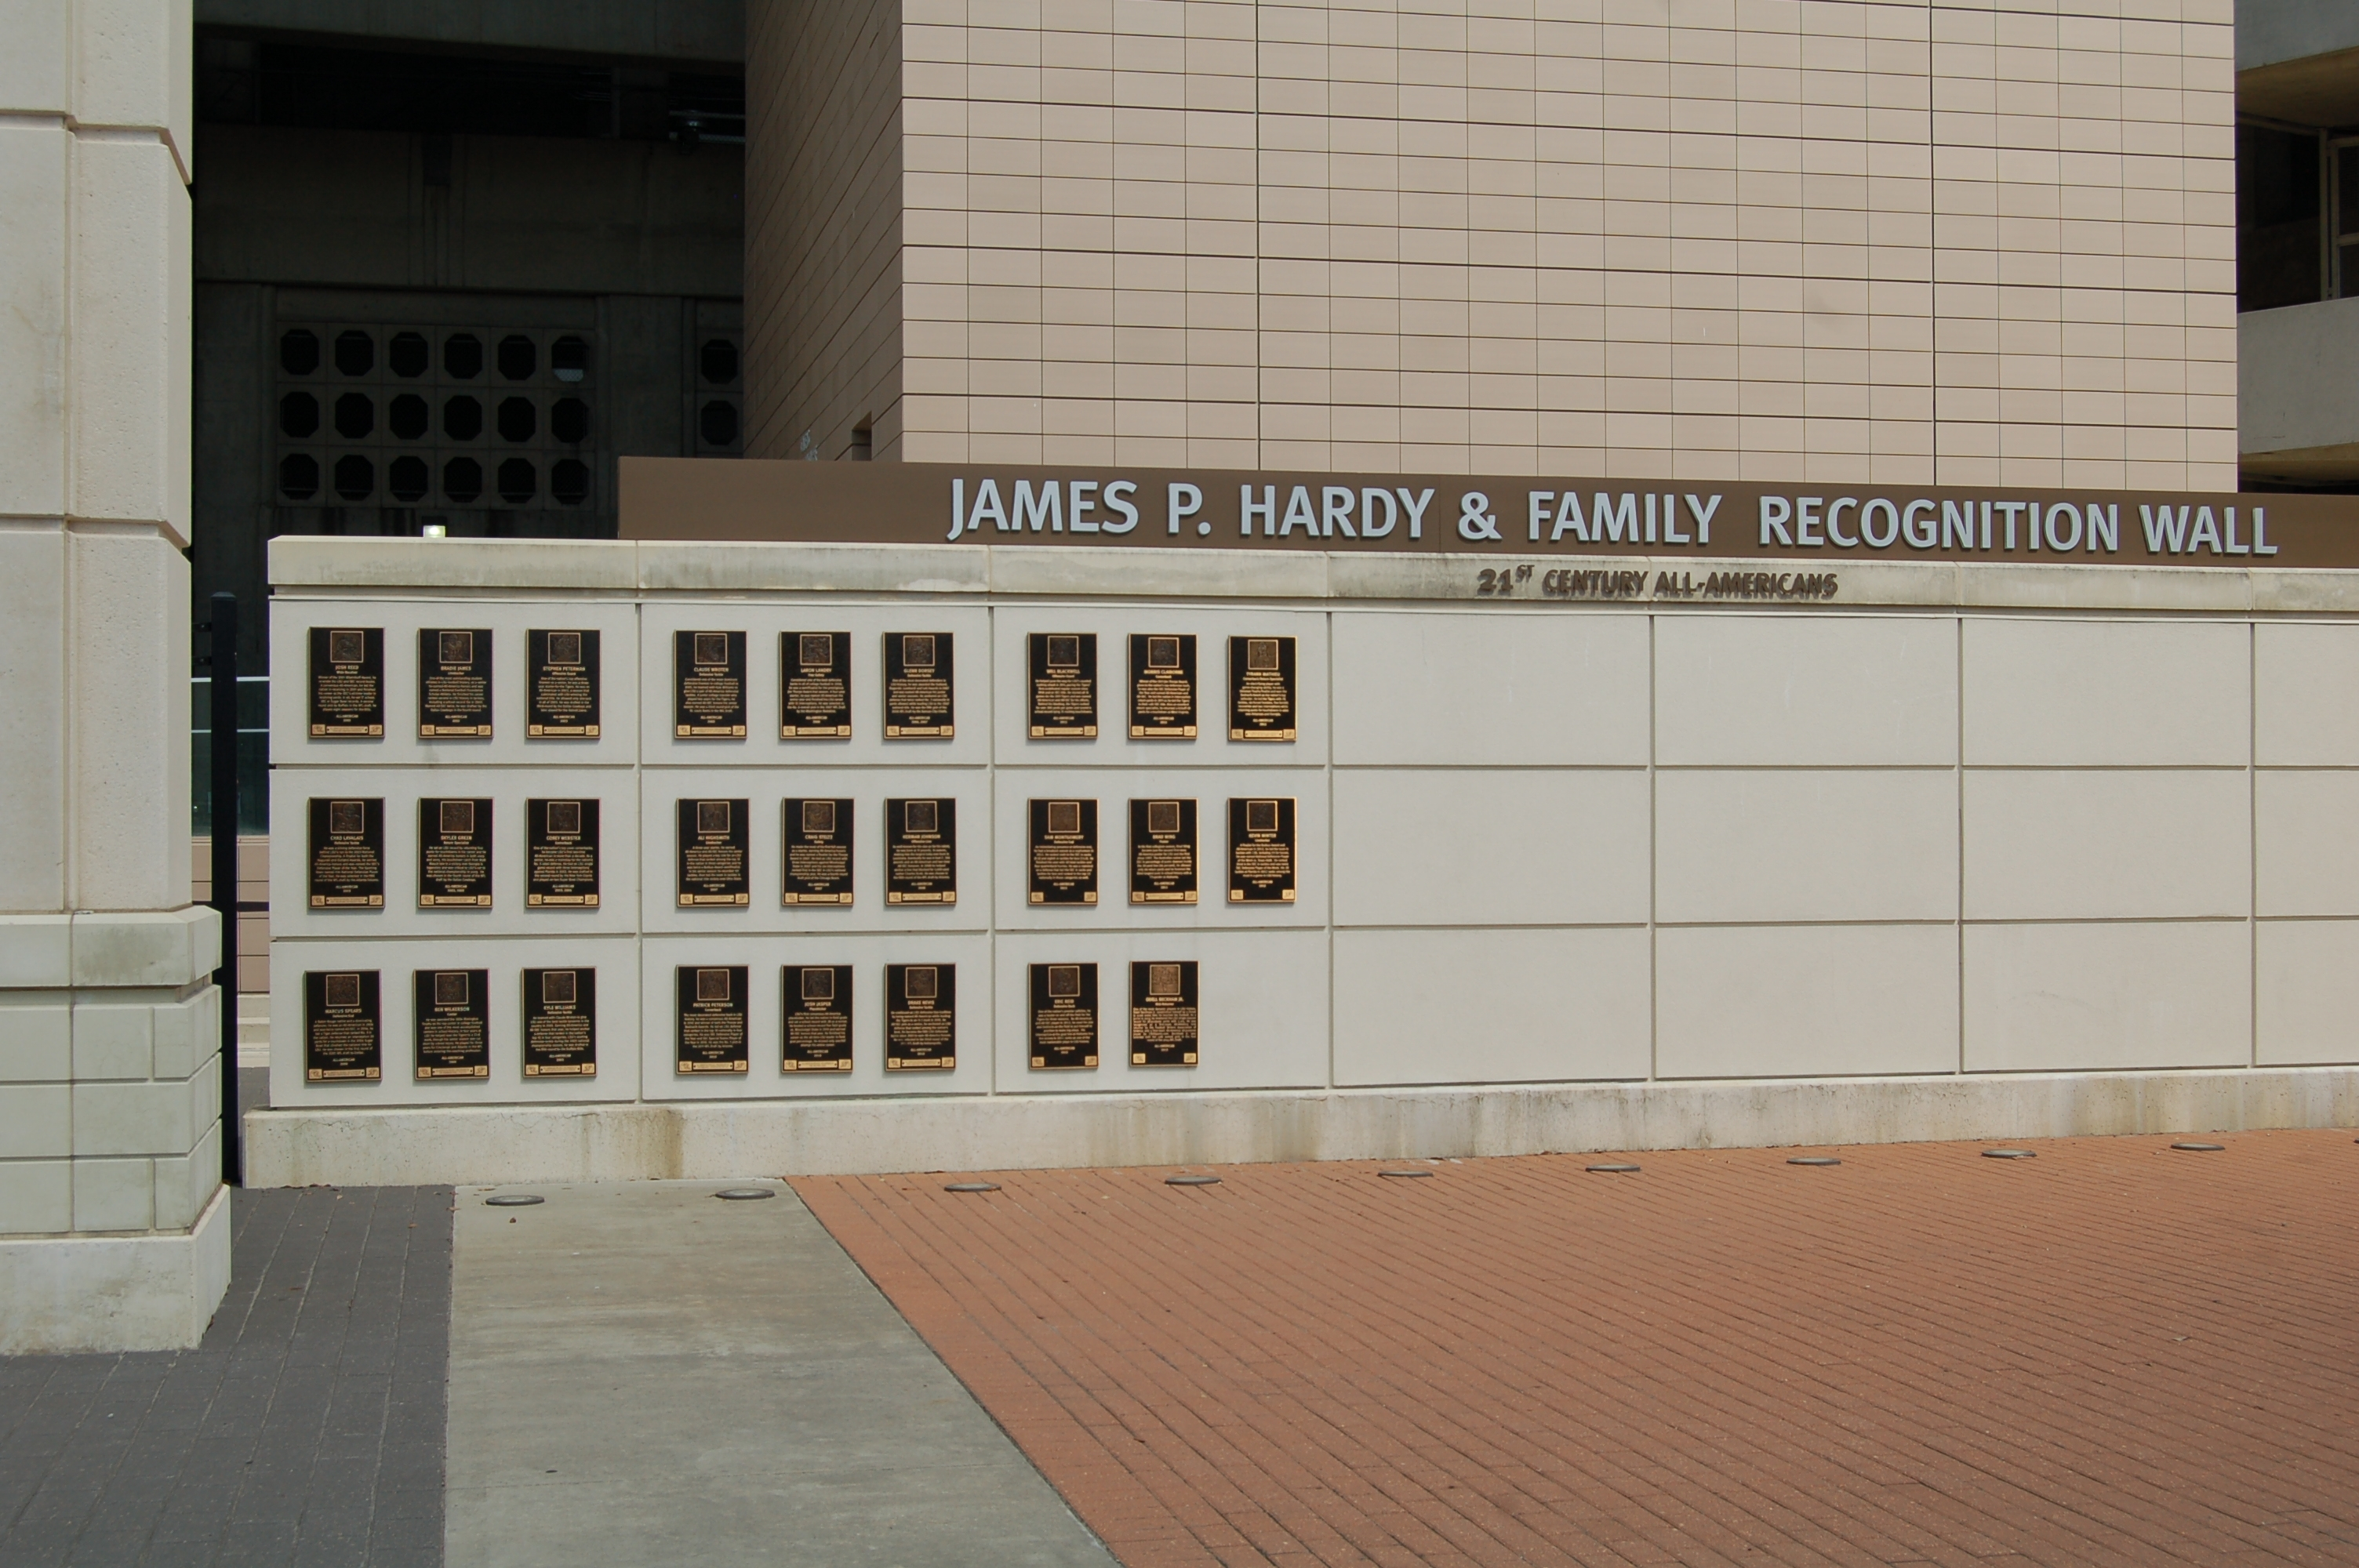 The James P. Hardy & Family Recognition Wall